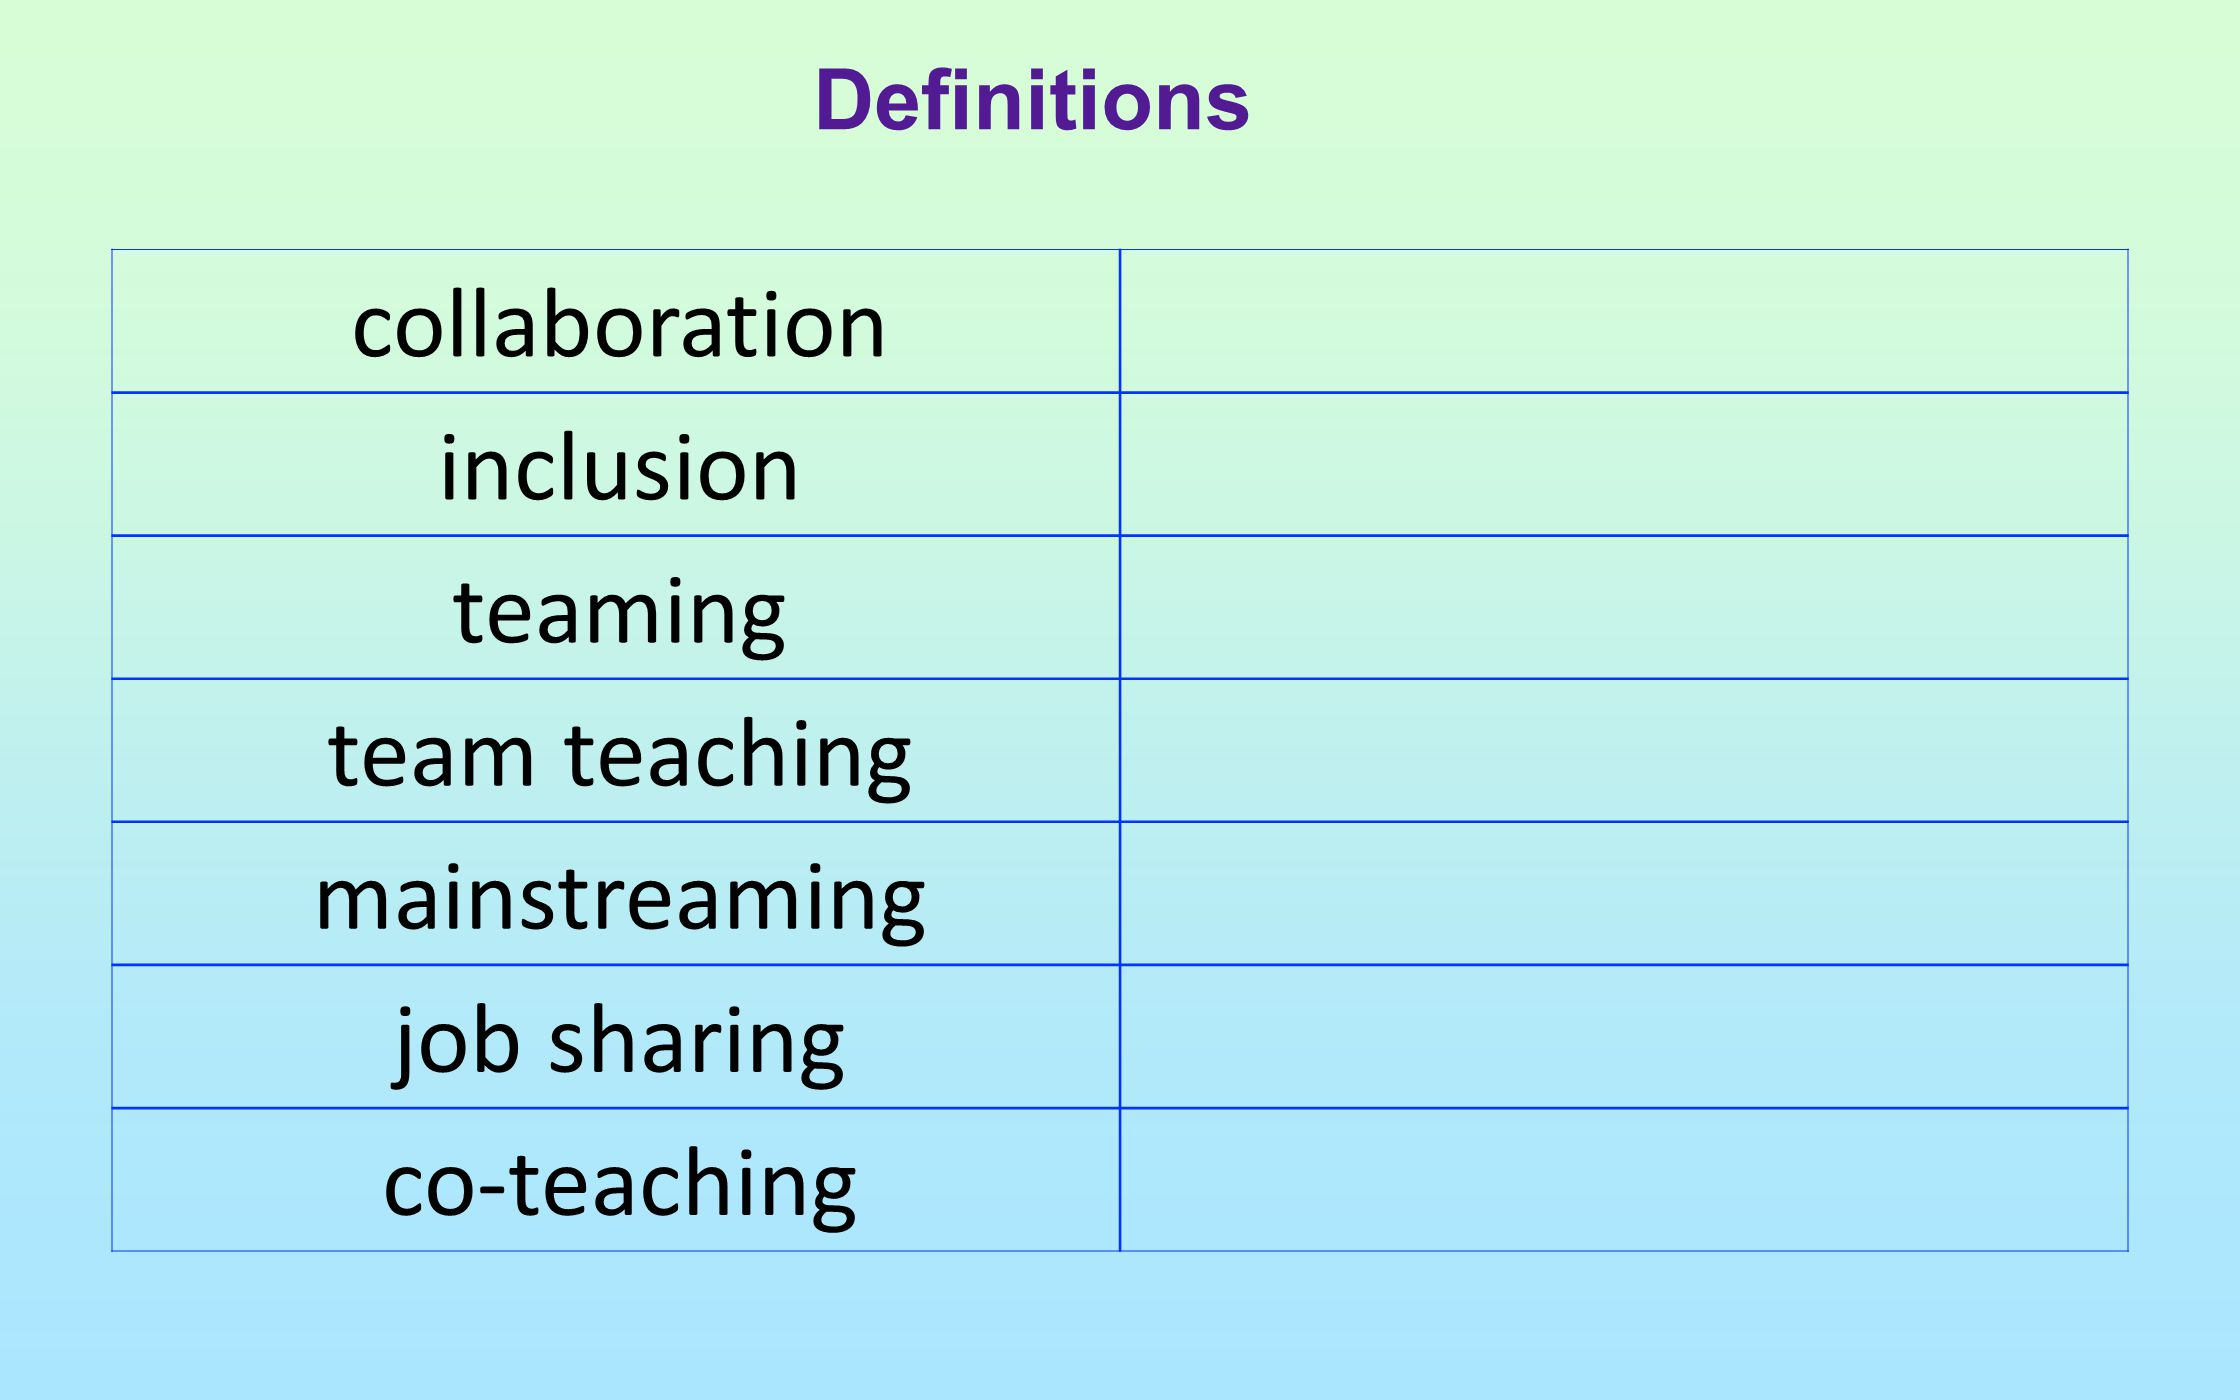 collaboration inclusion teaming team teaching mainstreaming job sharing co-teaching Definitions